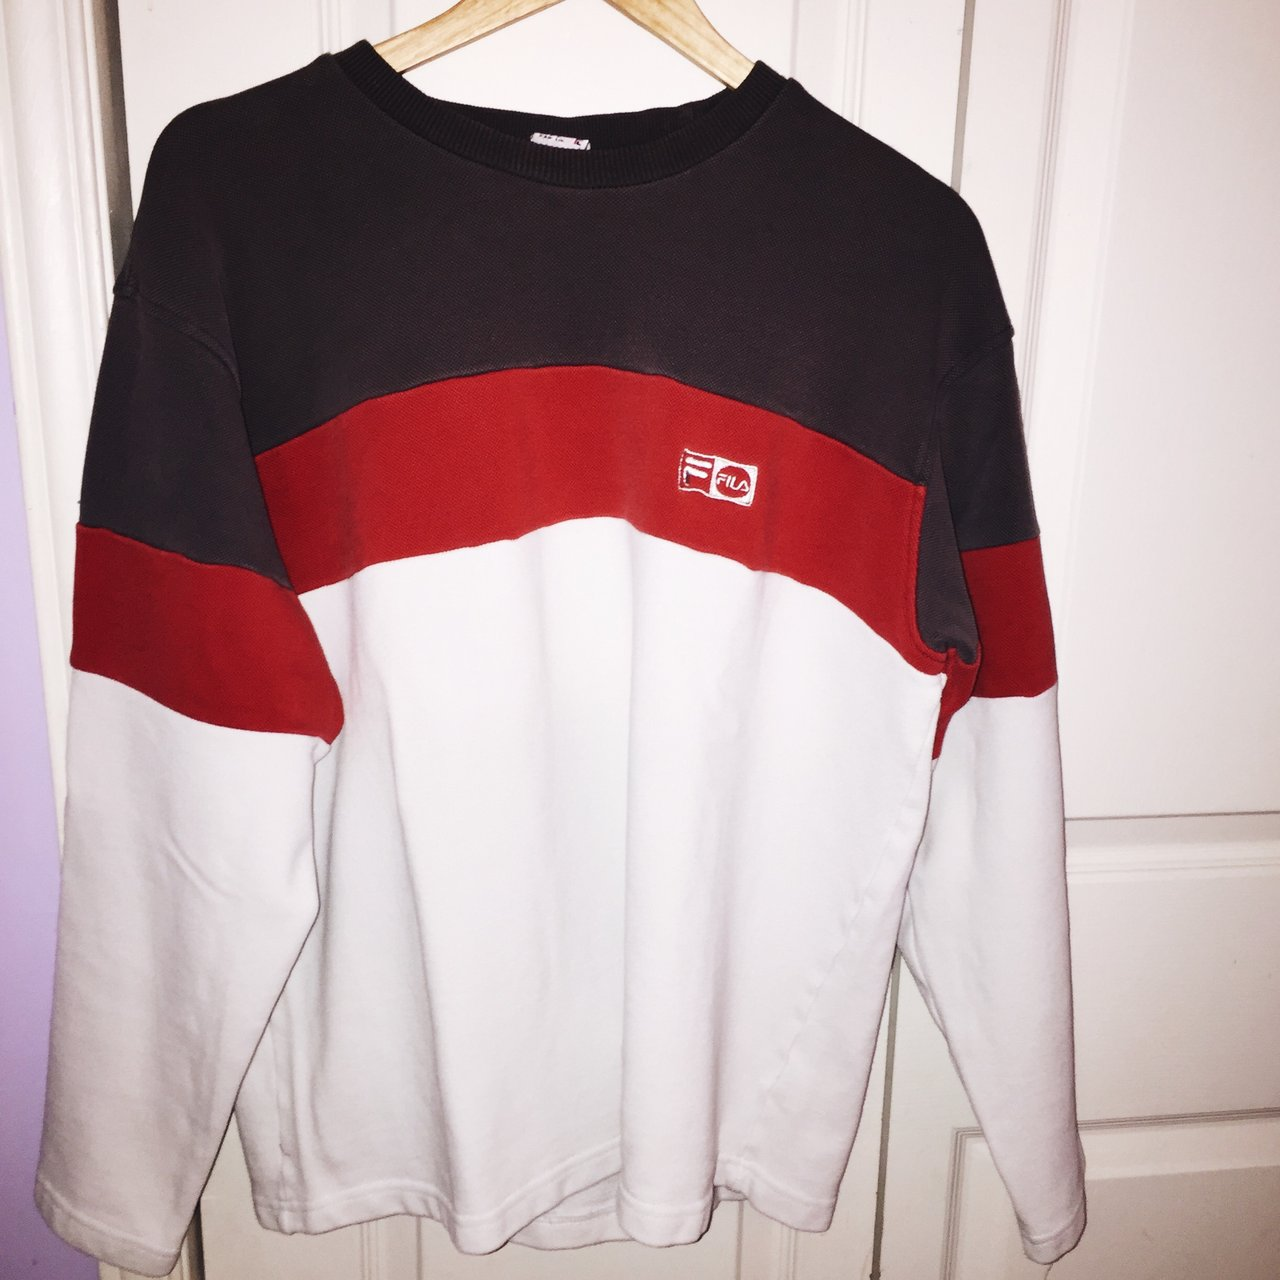 8e4dc1e1fffd @lindskeast. 4 months ago. Burlington, Canada. AUTHENTIC VINTAGE FILA  SWEATER ...